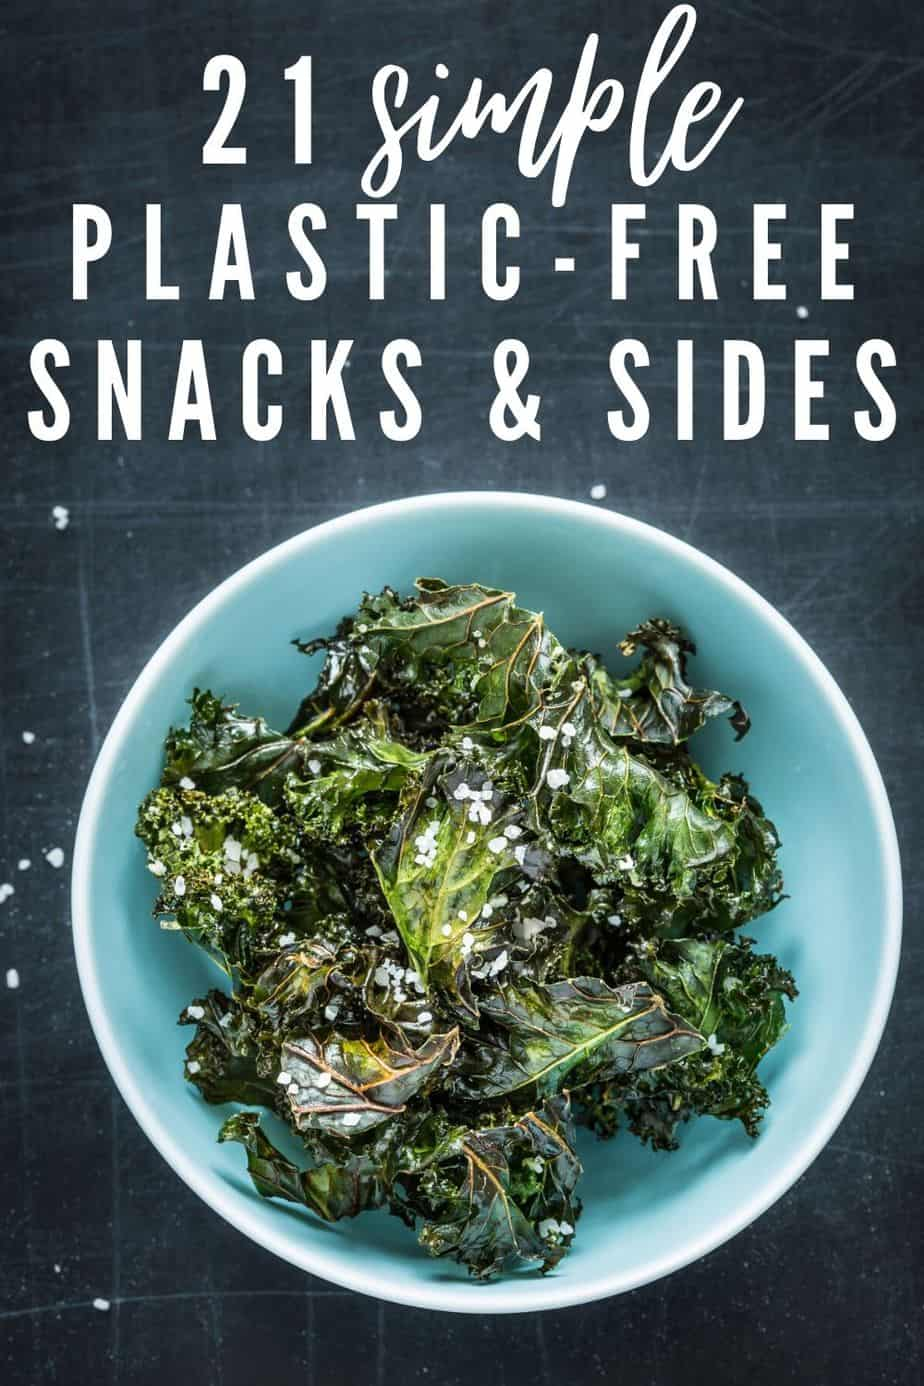 plastic free snacks